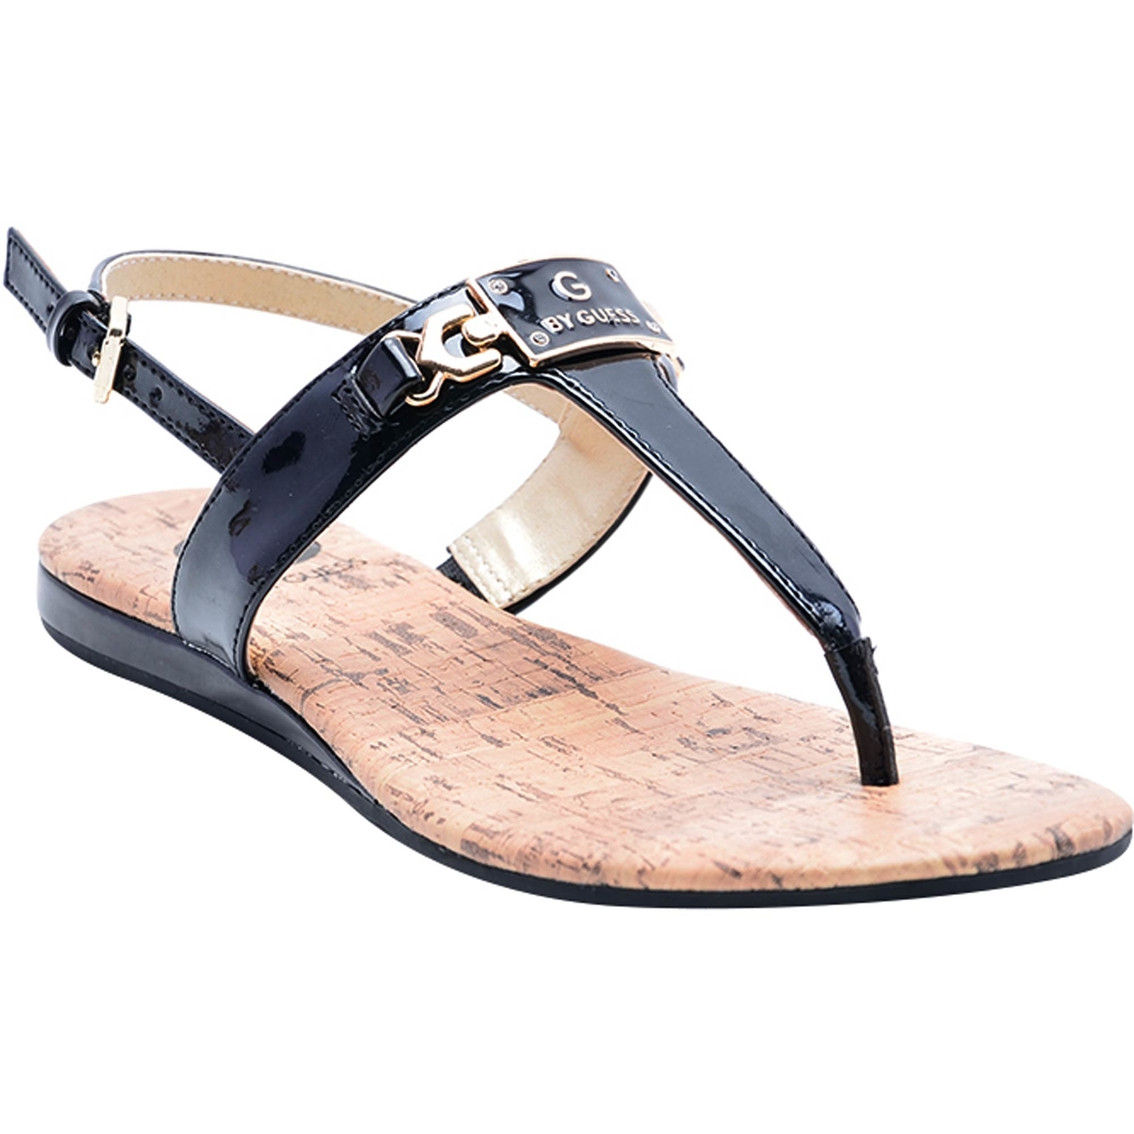 08a748c36db G By Guess Jemma Ornament Sling Back Thong Sandals